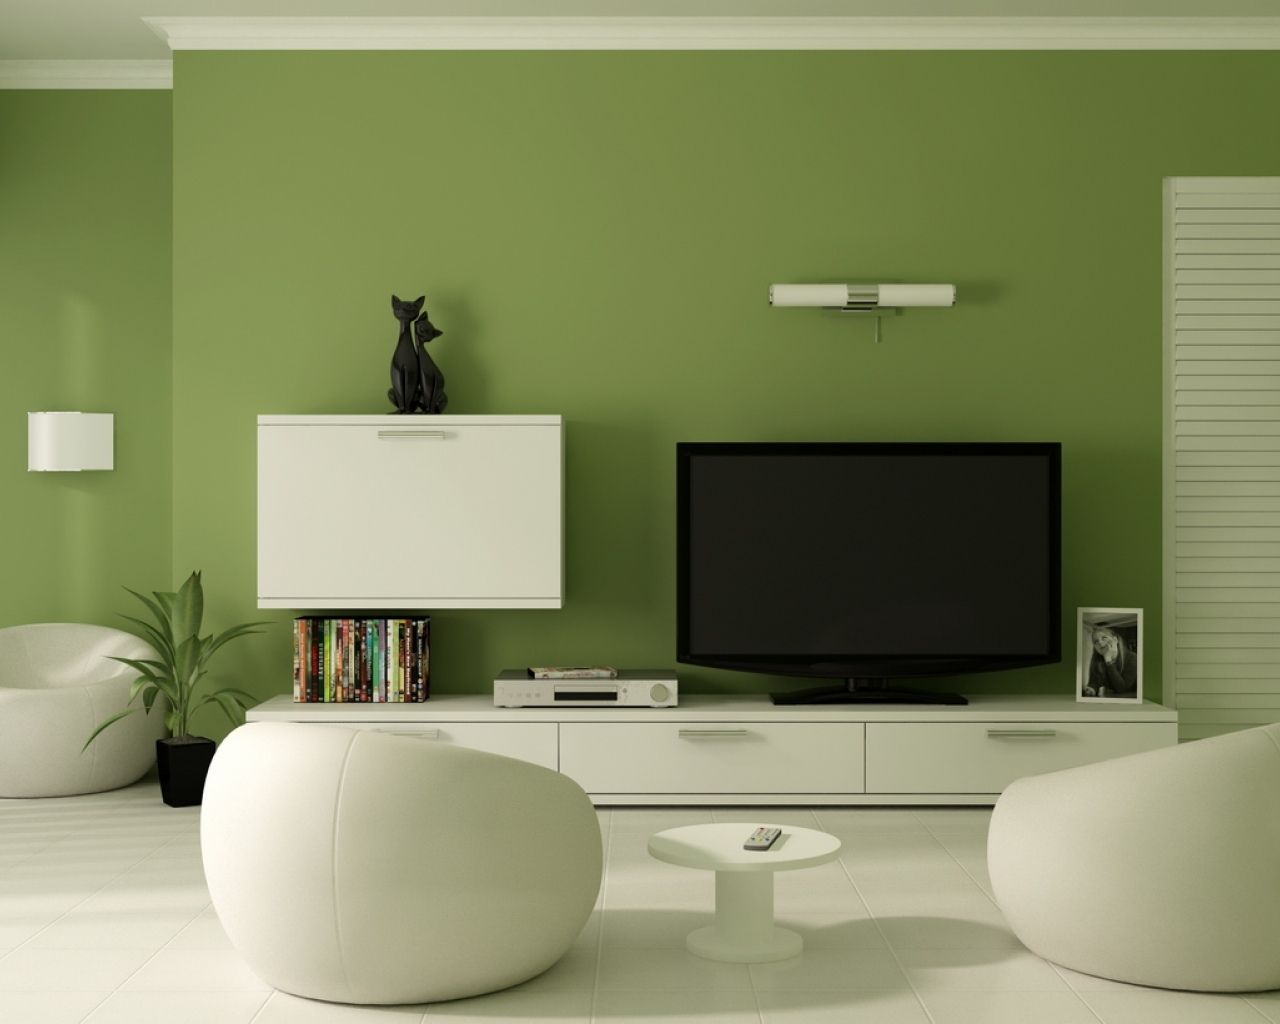 Wall Design Of Asian Paint Fresh Asian Paints Wall Decor Room Paint Interior Design Of 32 Unique Wall De Living Room Green Living Room Colors Living Room Color